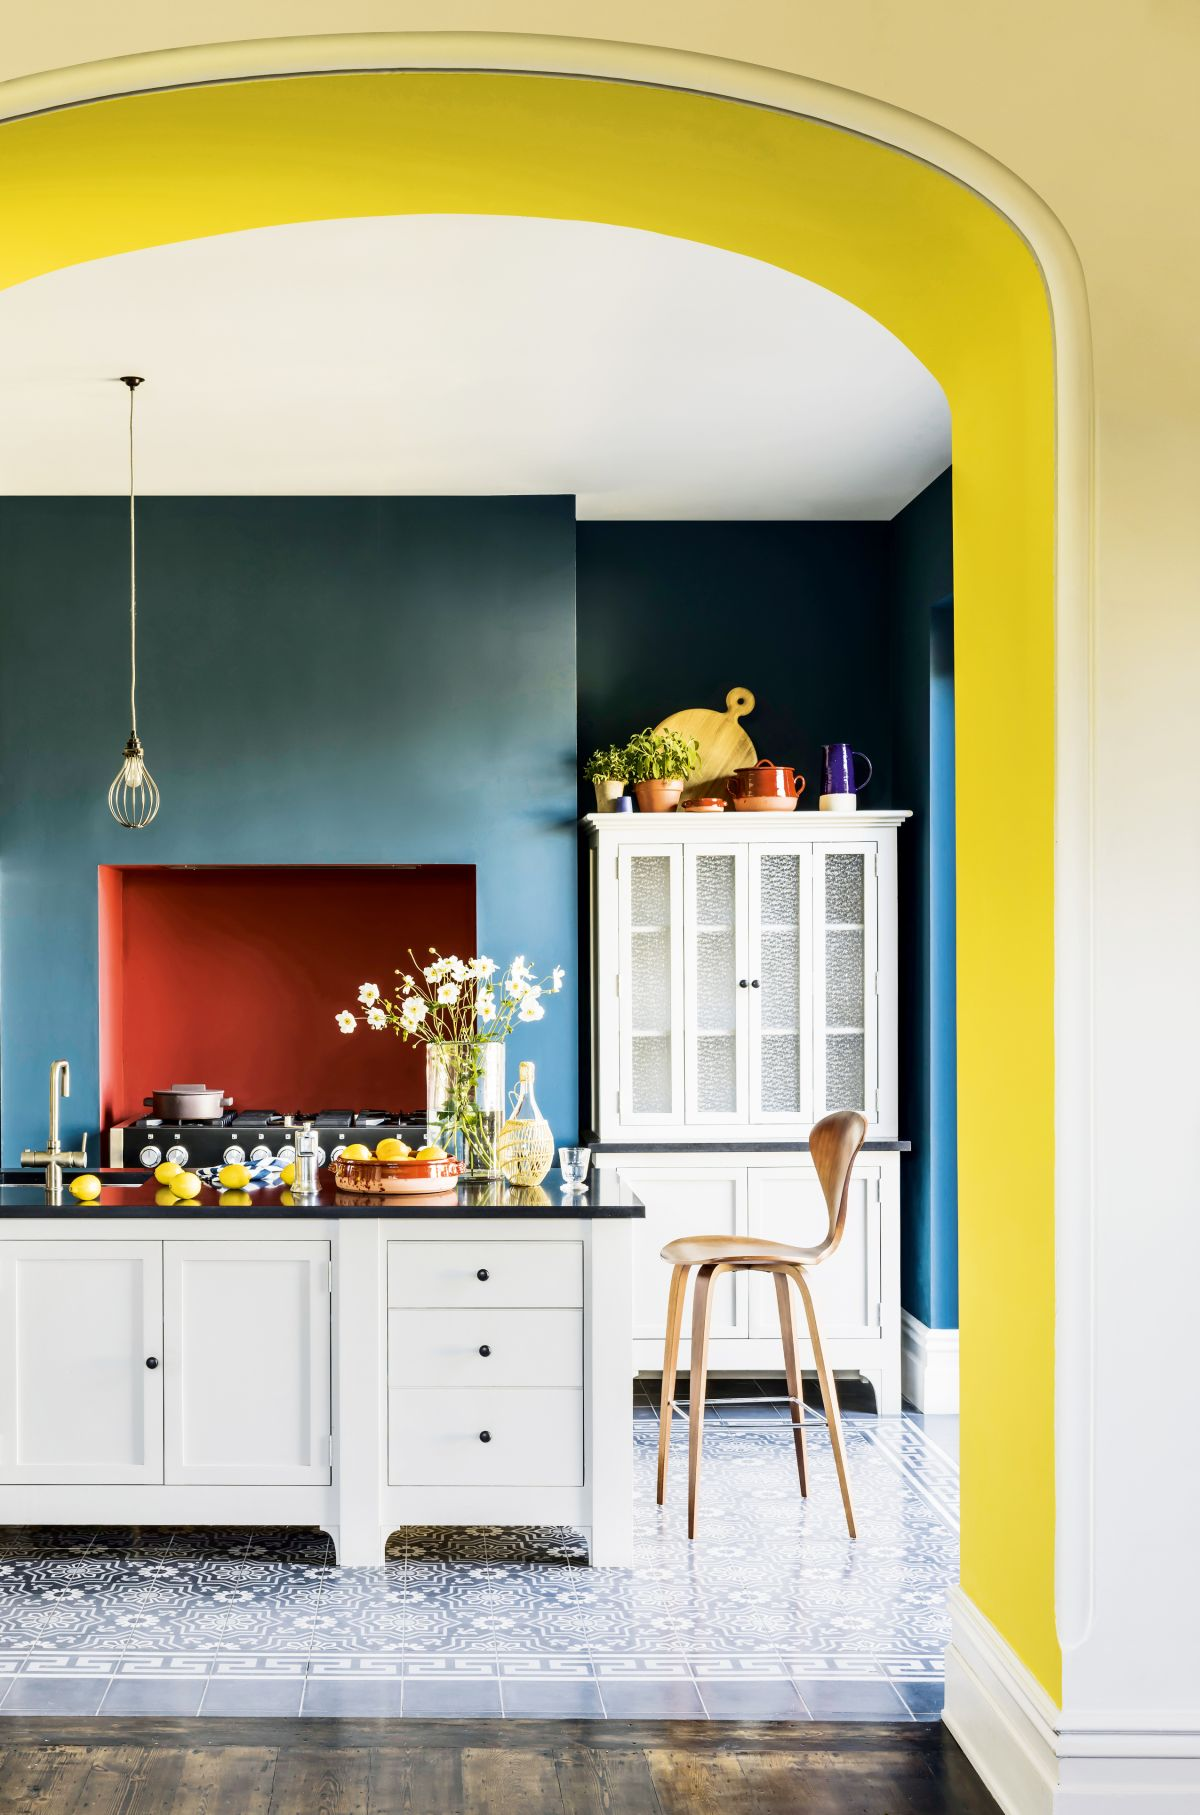 Blue room ideas: 21 inspiring ways to decorate with blue